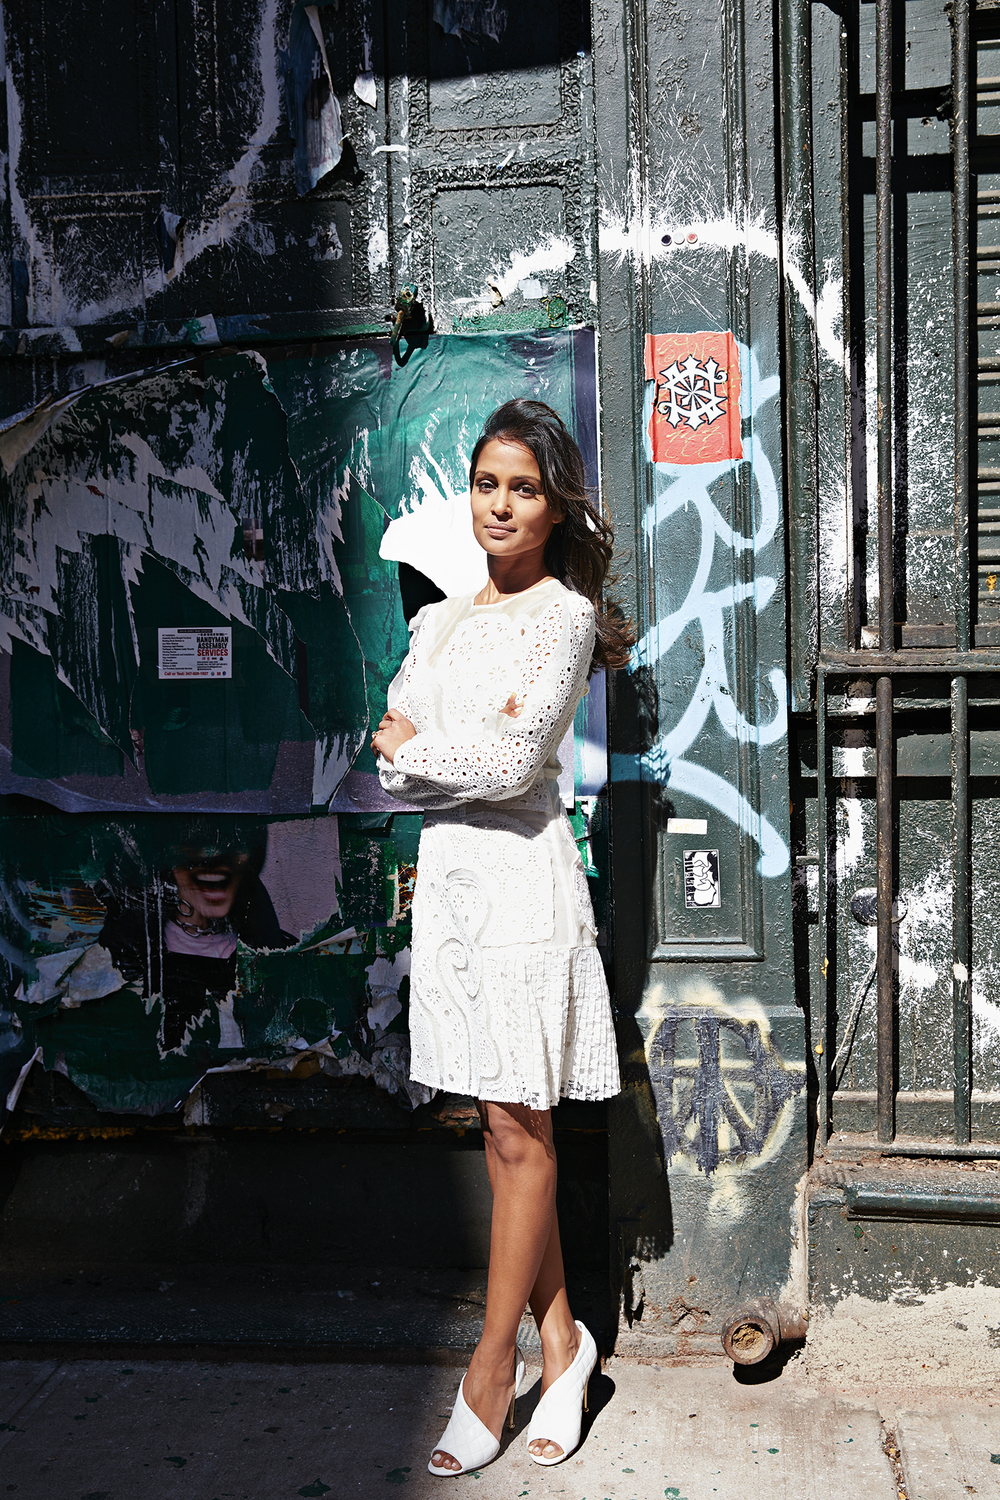 Kinjil Mathur in New York City. (Photo: Jessica Antola)